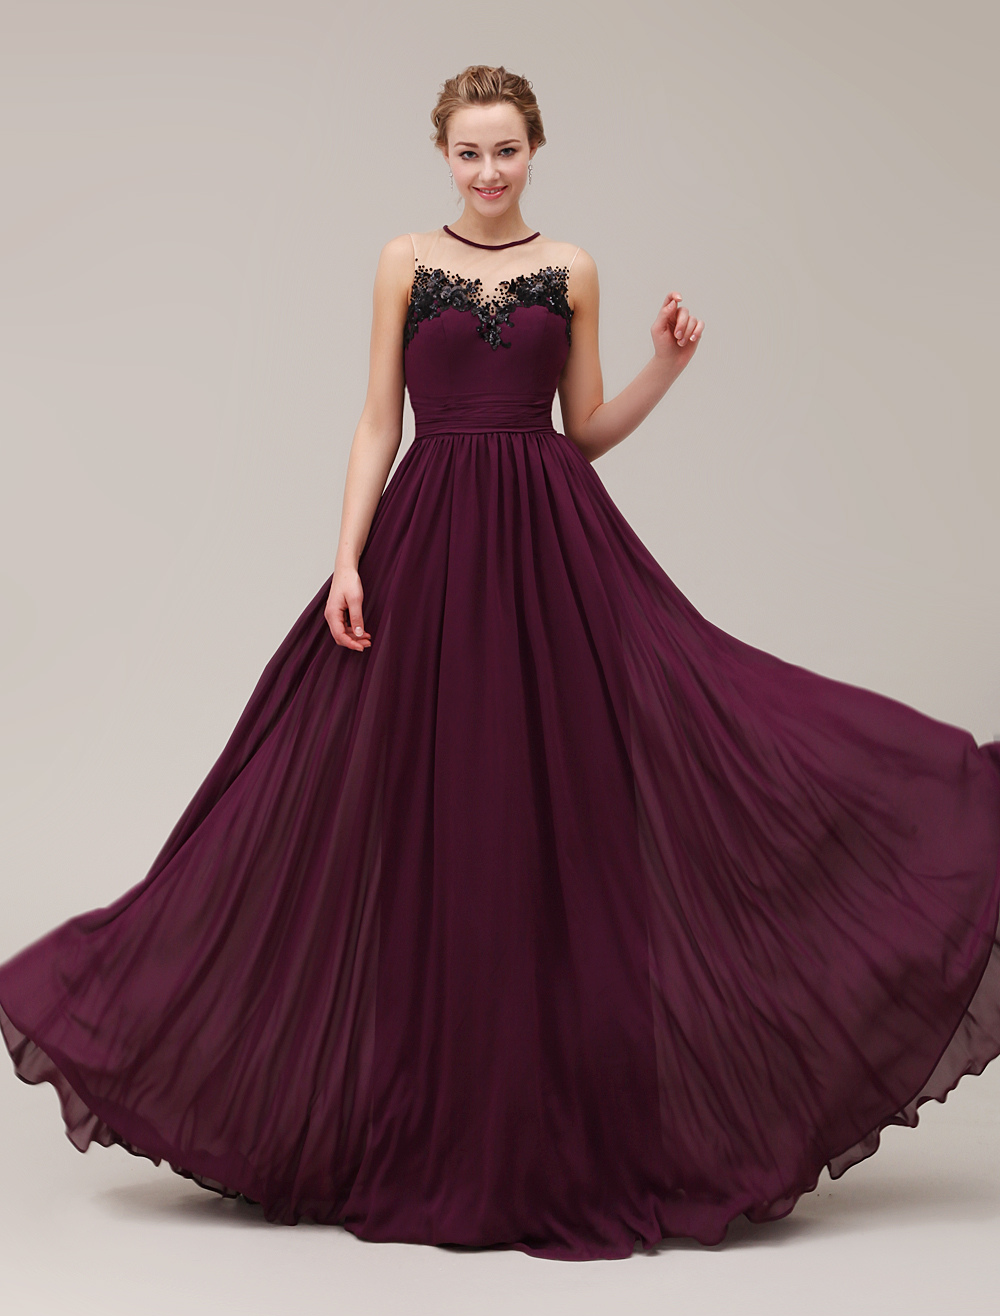 Semi-Sheer Jewel Neck Floor-Length Sequin Pleated Applique Evening Dress with Beading  Milanoo